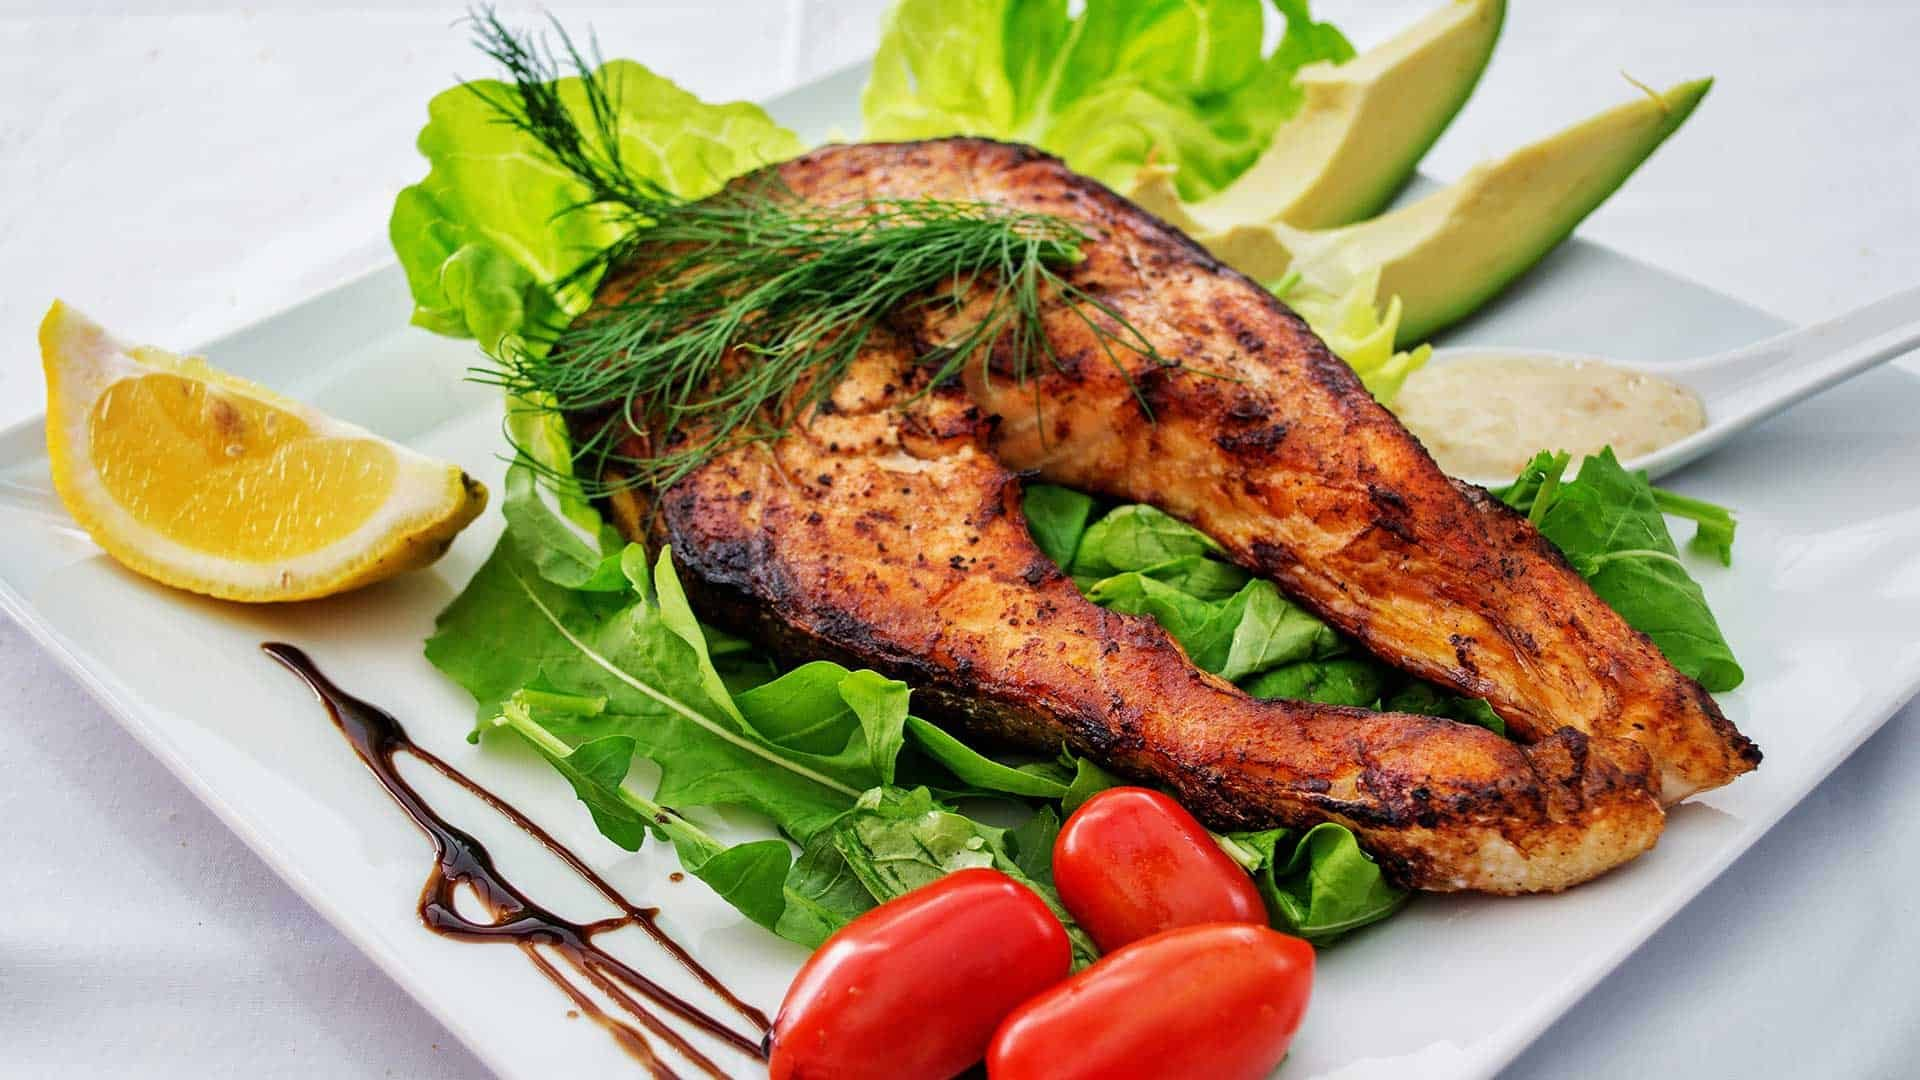 Grilled fish and avocado salad made in NOLA